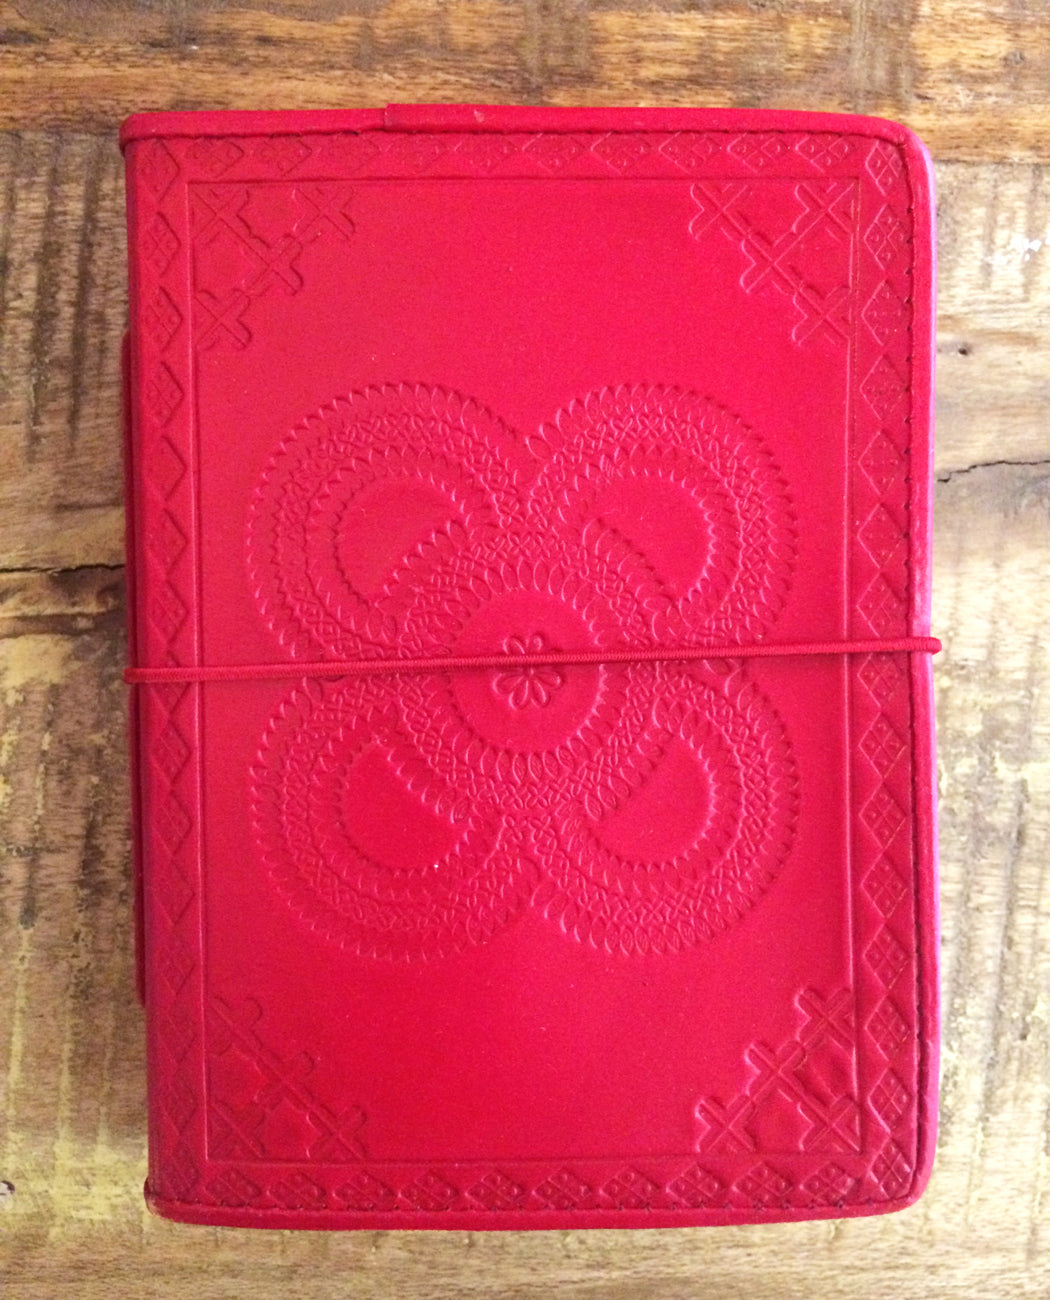 Red leather Journal